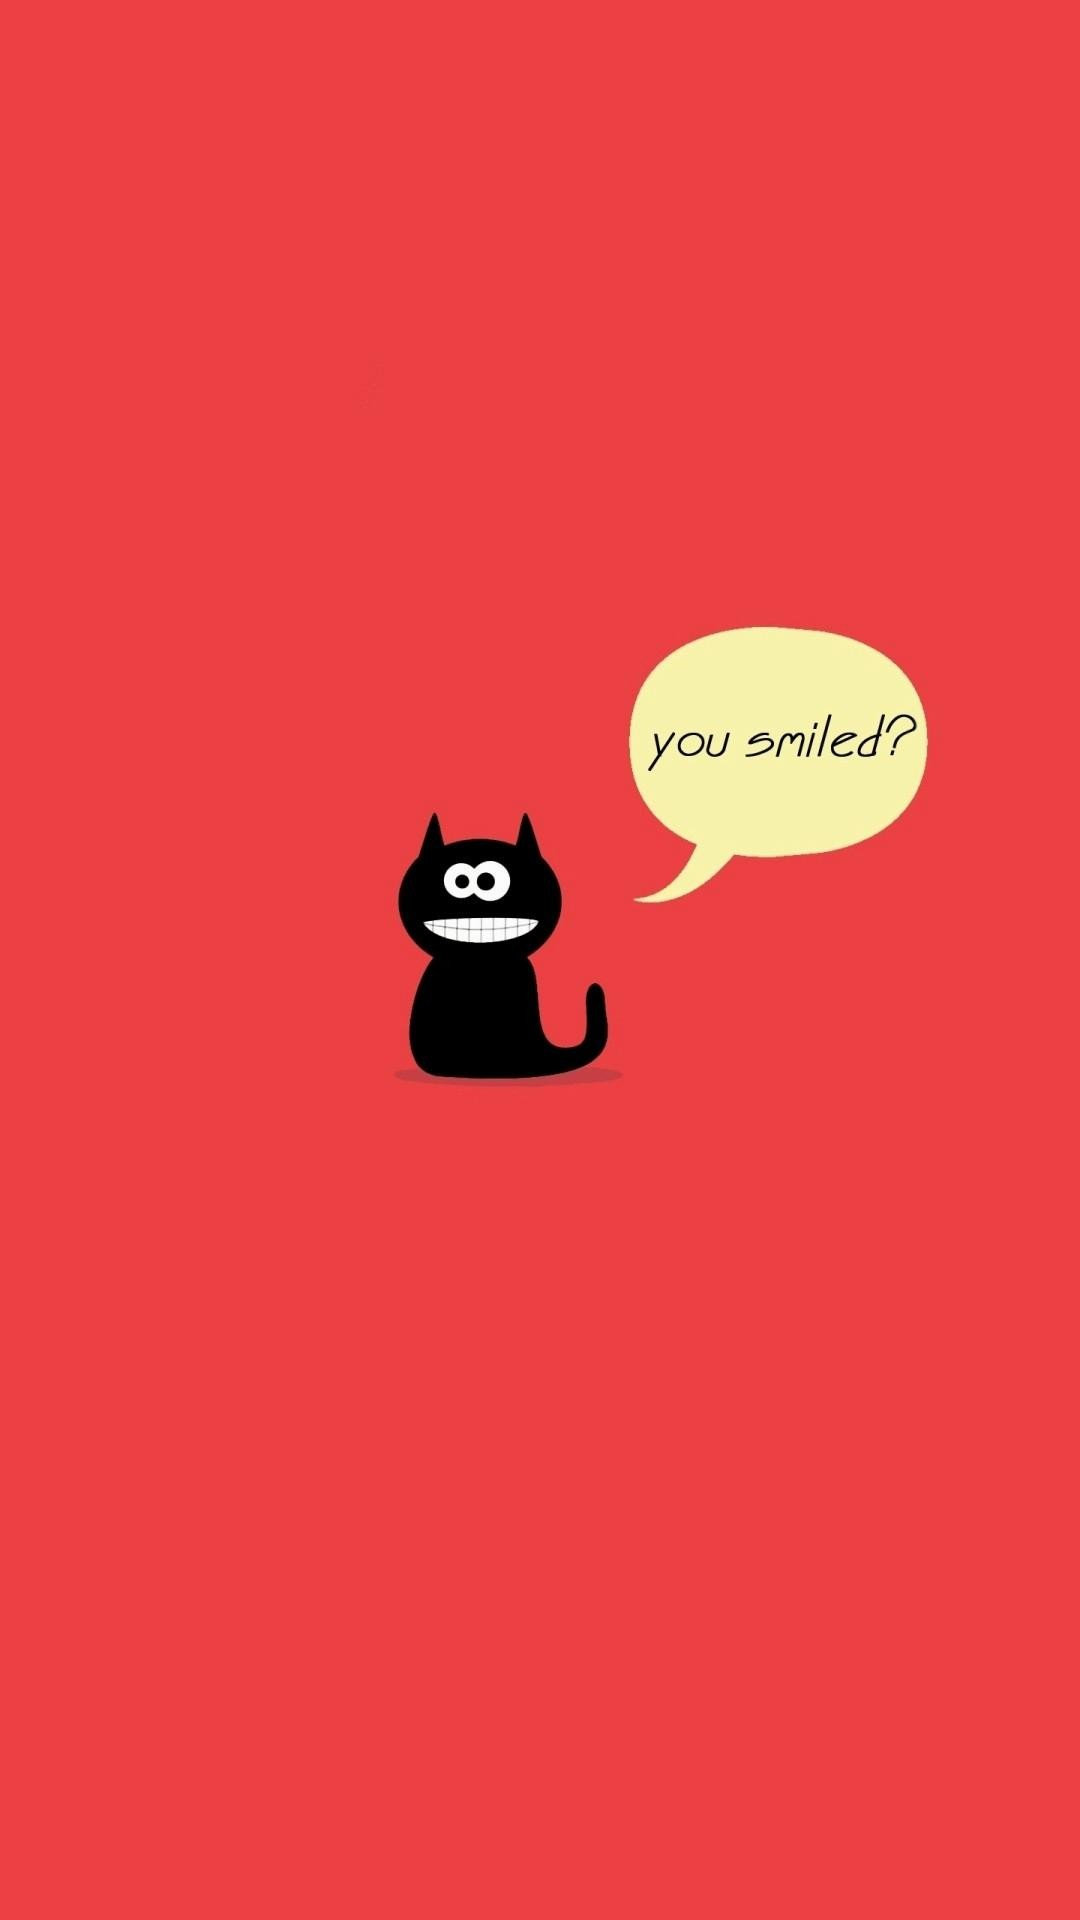 Black-Cute-Smile-Cat-Tap-to-see-more-